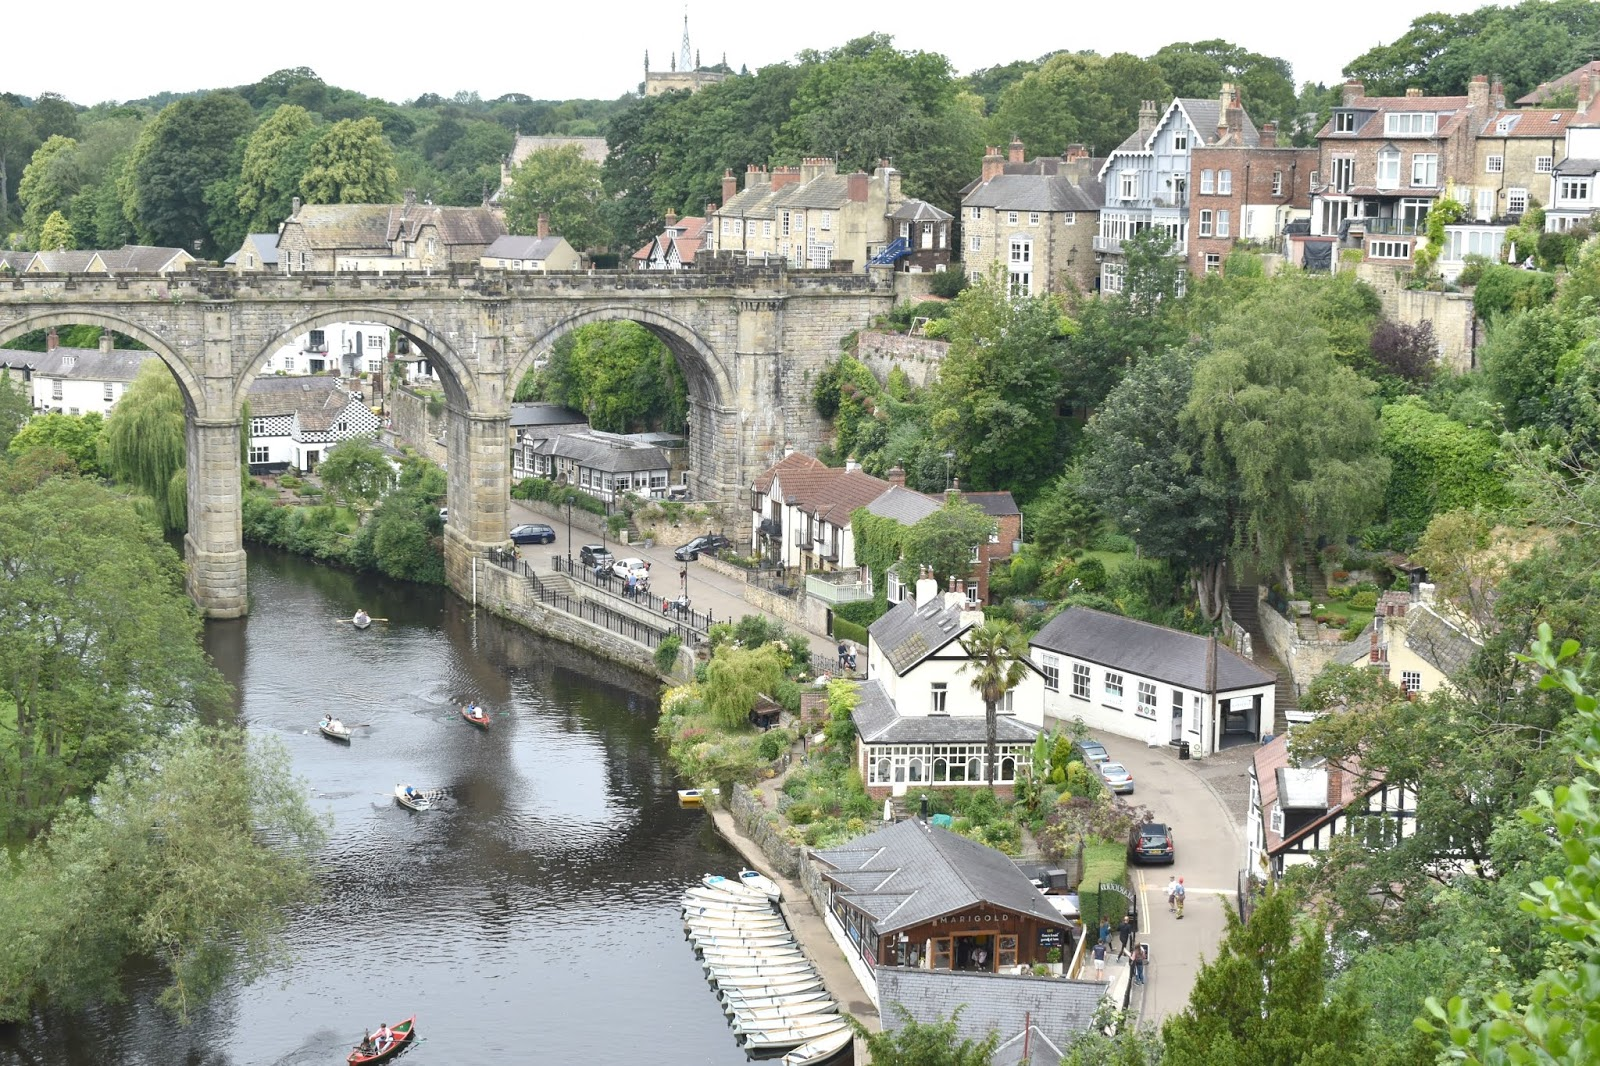 Exploring Harrogate - A Day Trip to Knaresborough and Breakfast at The Wild Plum